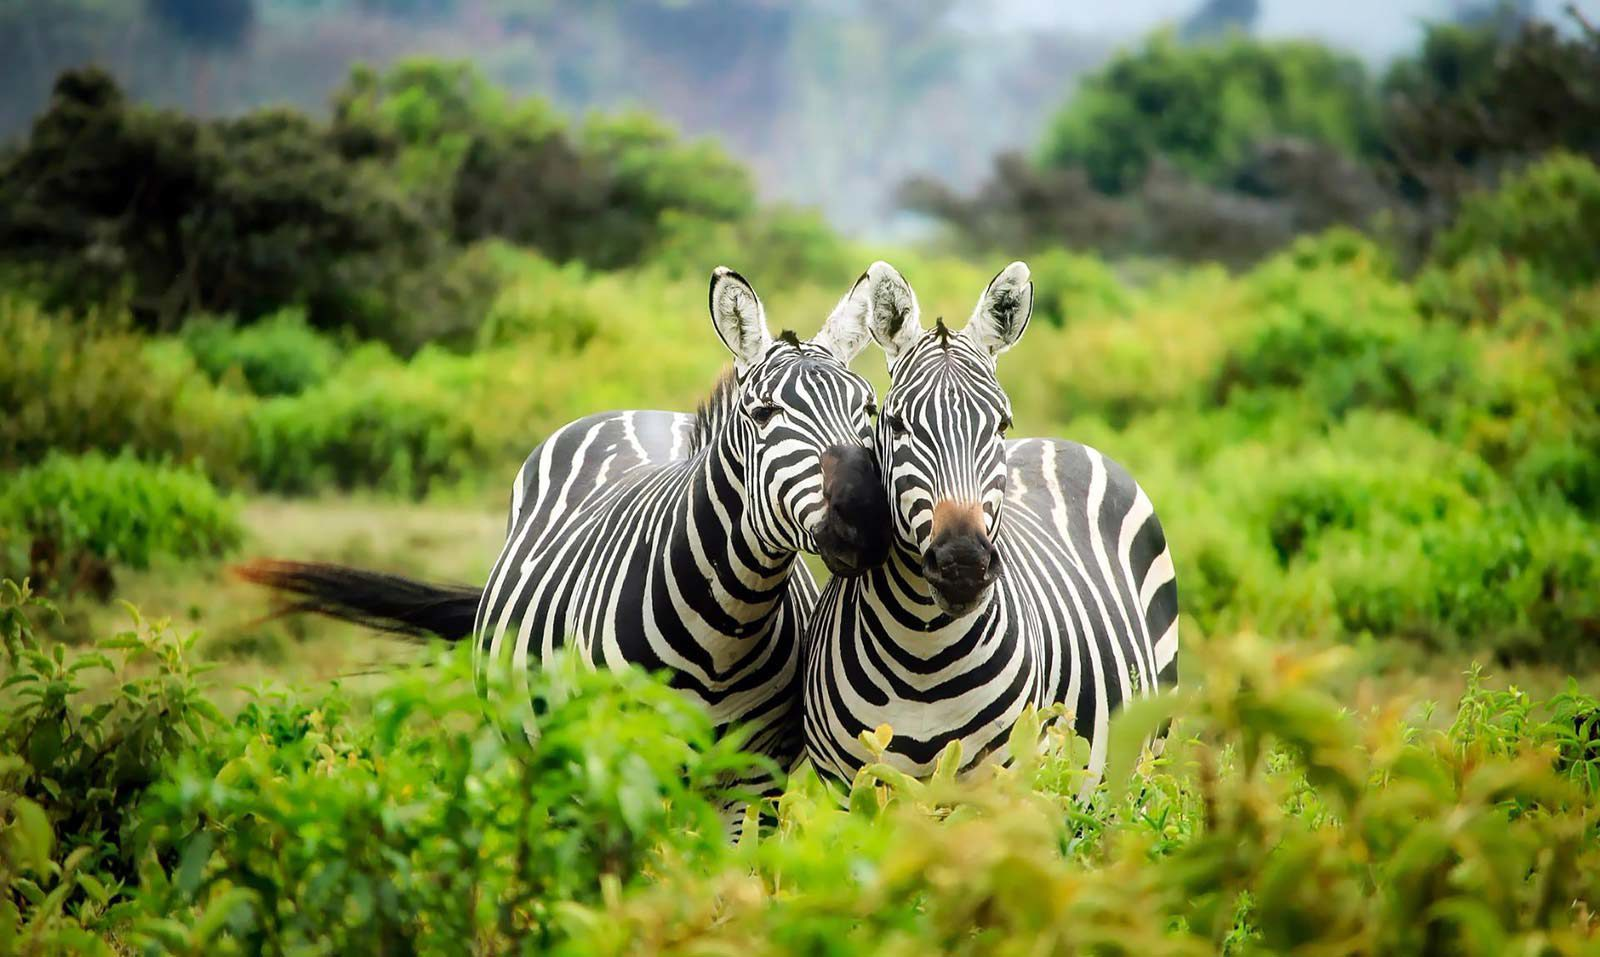 Two zebras standing close together in green vegetation.